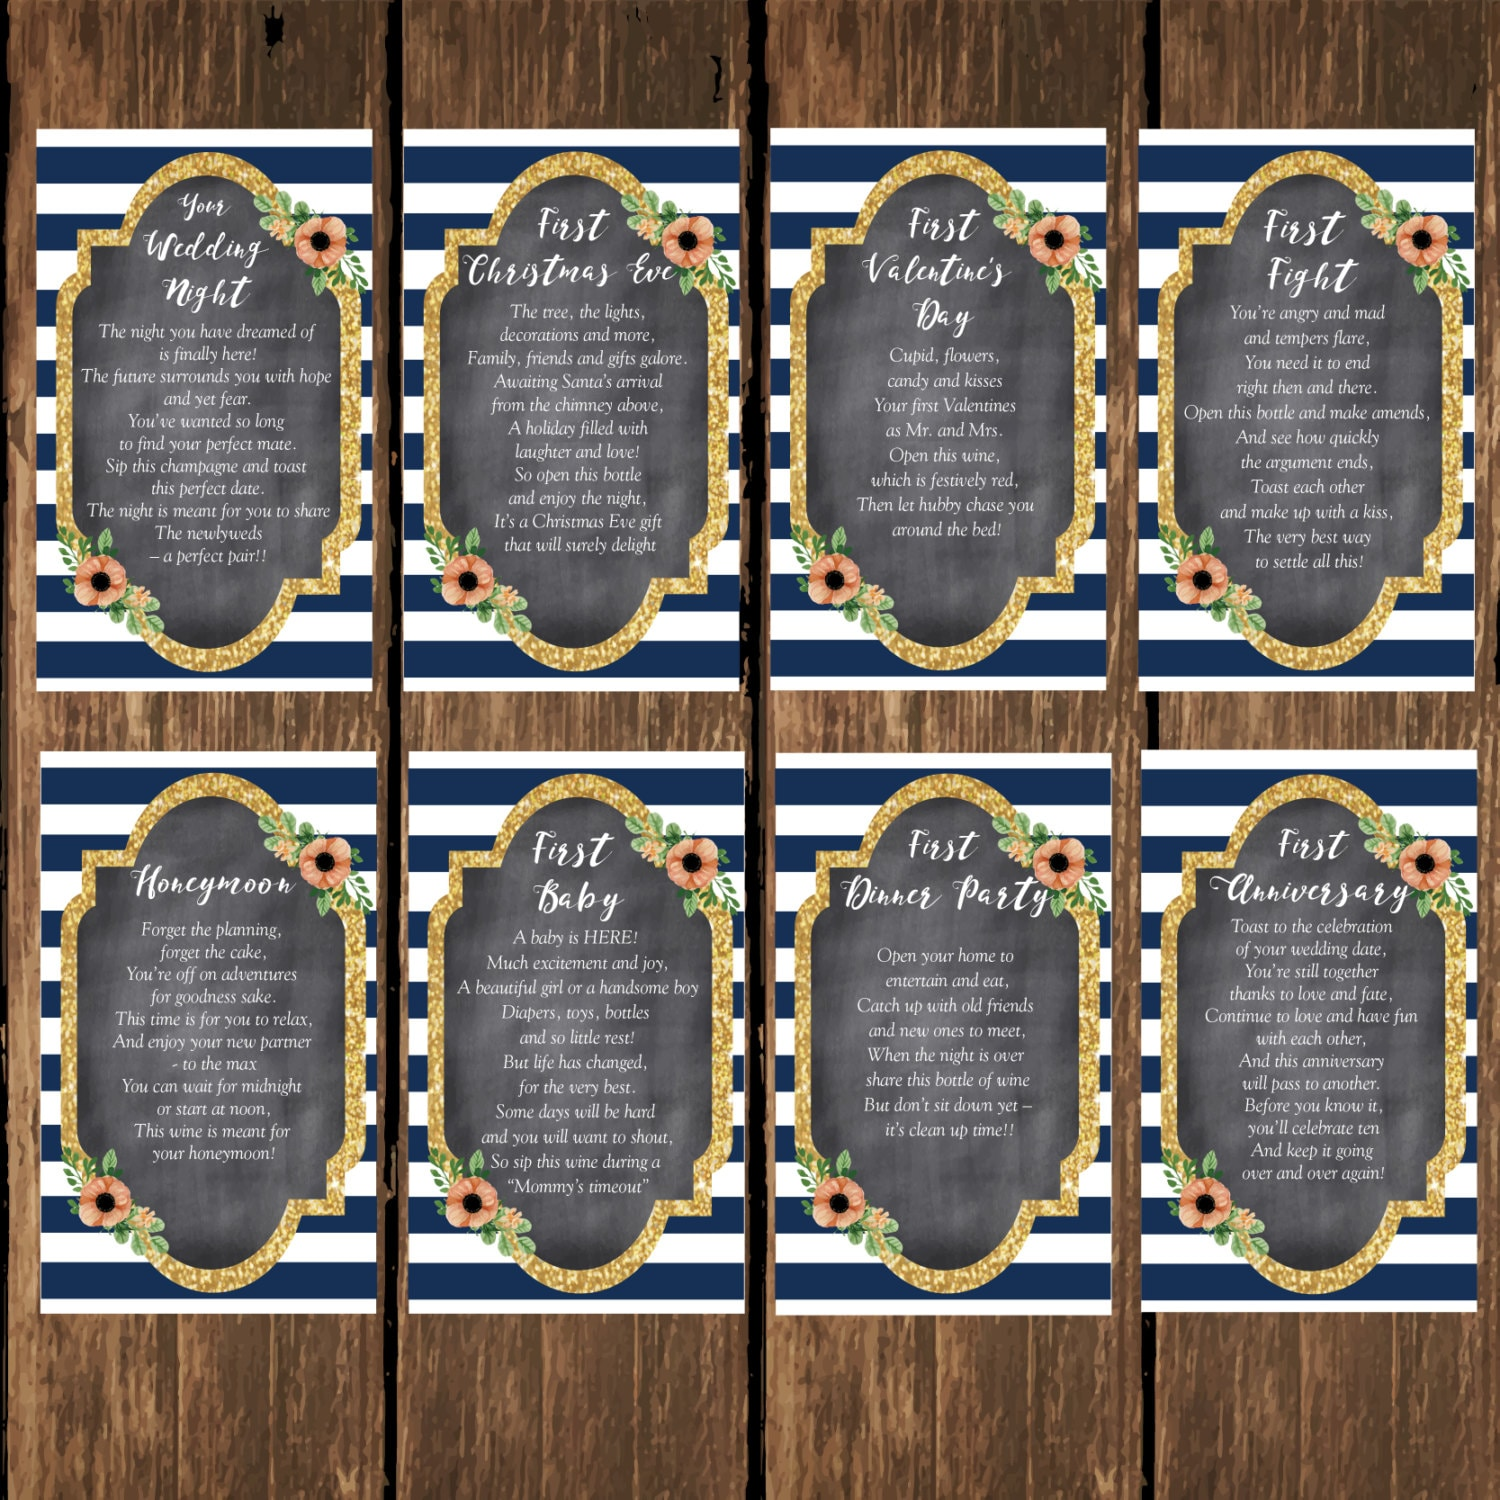 INSTANT DOWNLOAD, Wedding Printables, Bridal Shower Wine Tags with Poems  for Wedding Shower or Bachelorette Wine Gift Basket - Set of 8